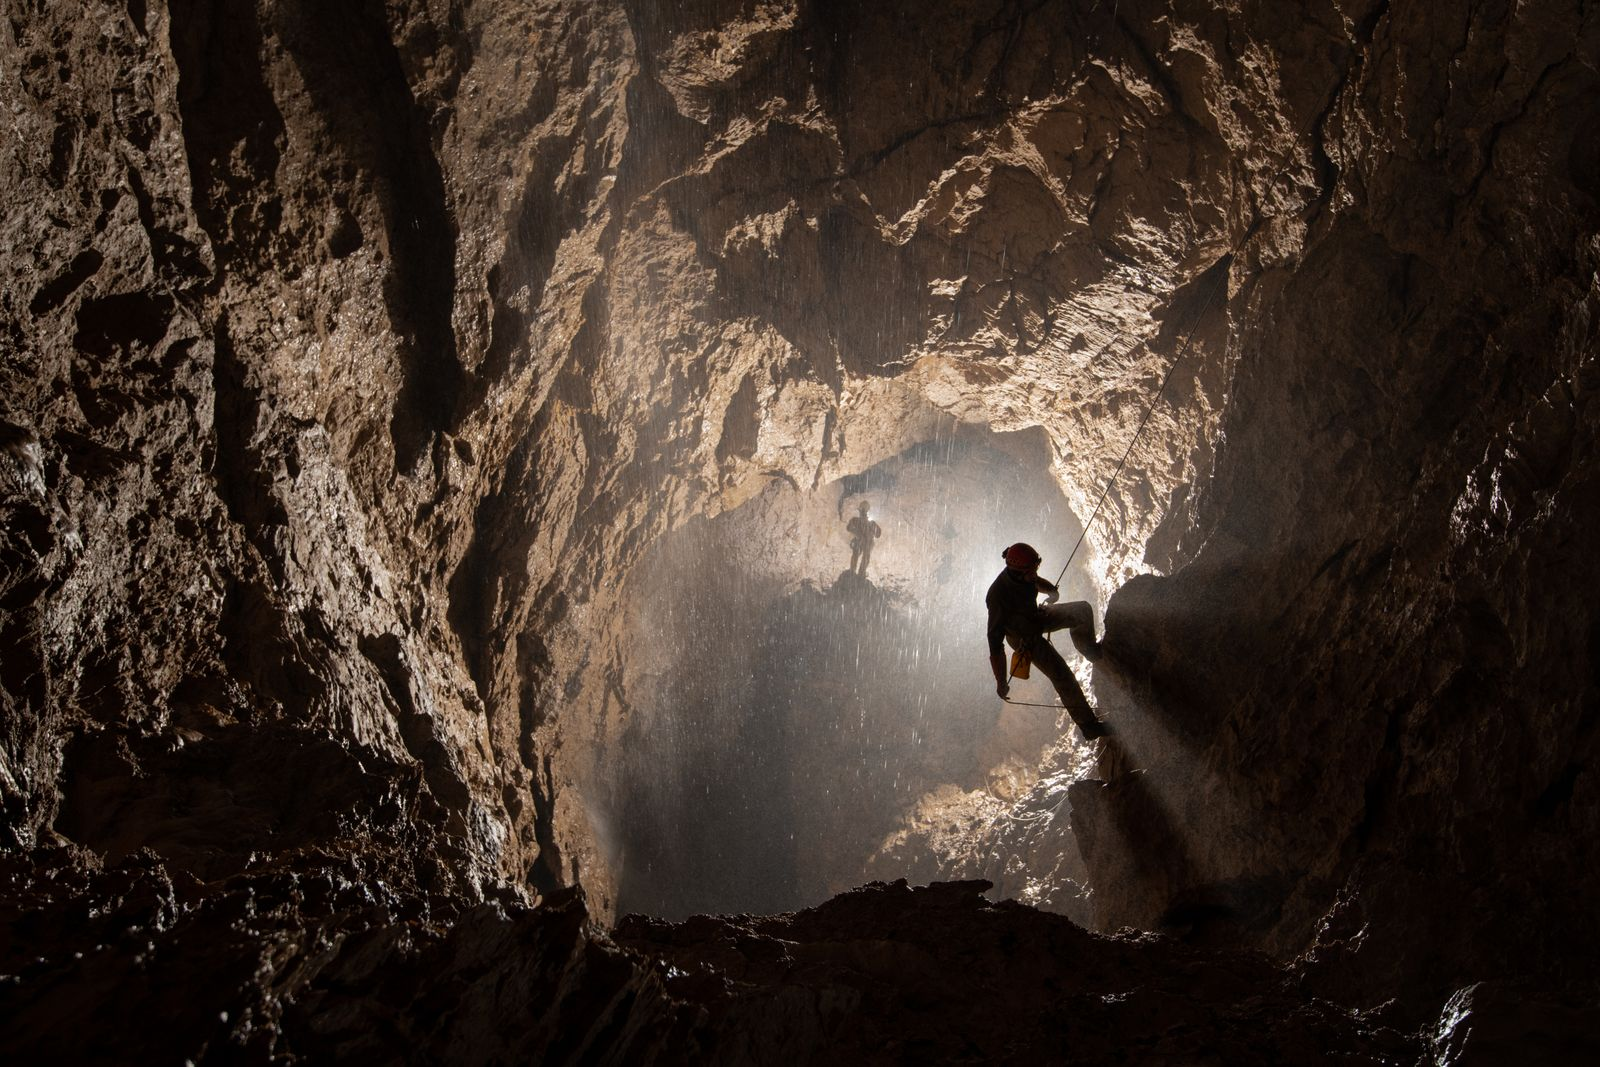 Adventure exploration expedition to document the team of Russian pioneers who are exploring Veryovkina - the deepest cave in the world in the Caucasus mountains, Abkhazia. Led by Russian explorer Pavel Demidov, this set follows a three week trip with a two week (continuous) expedition inside the cave following the team down to the bottom at -2212m below ground.